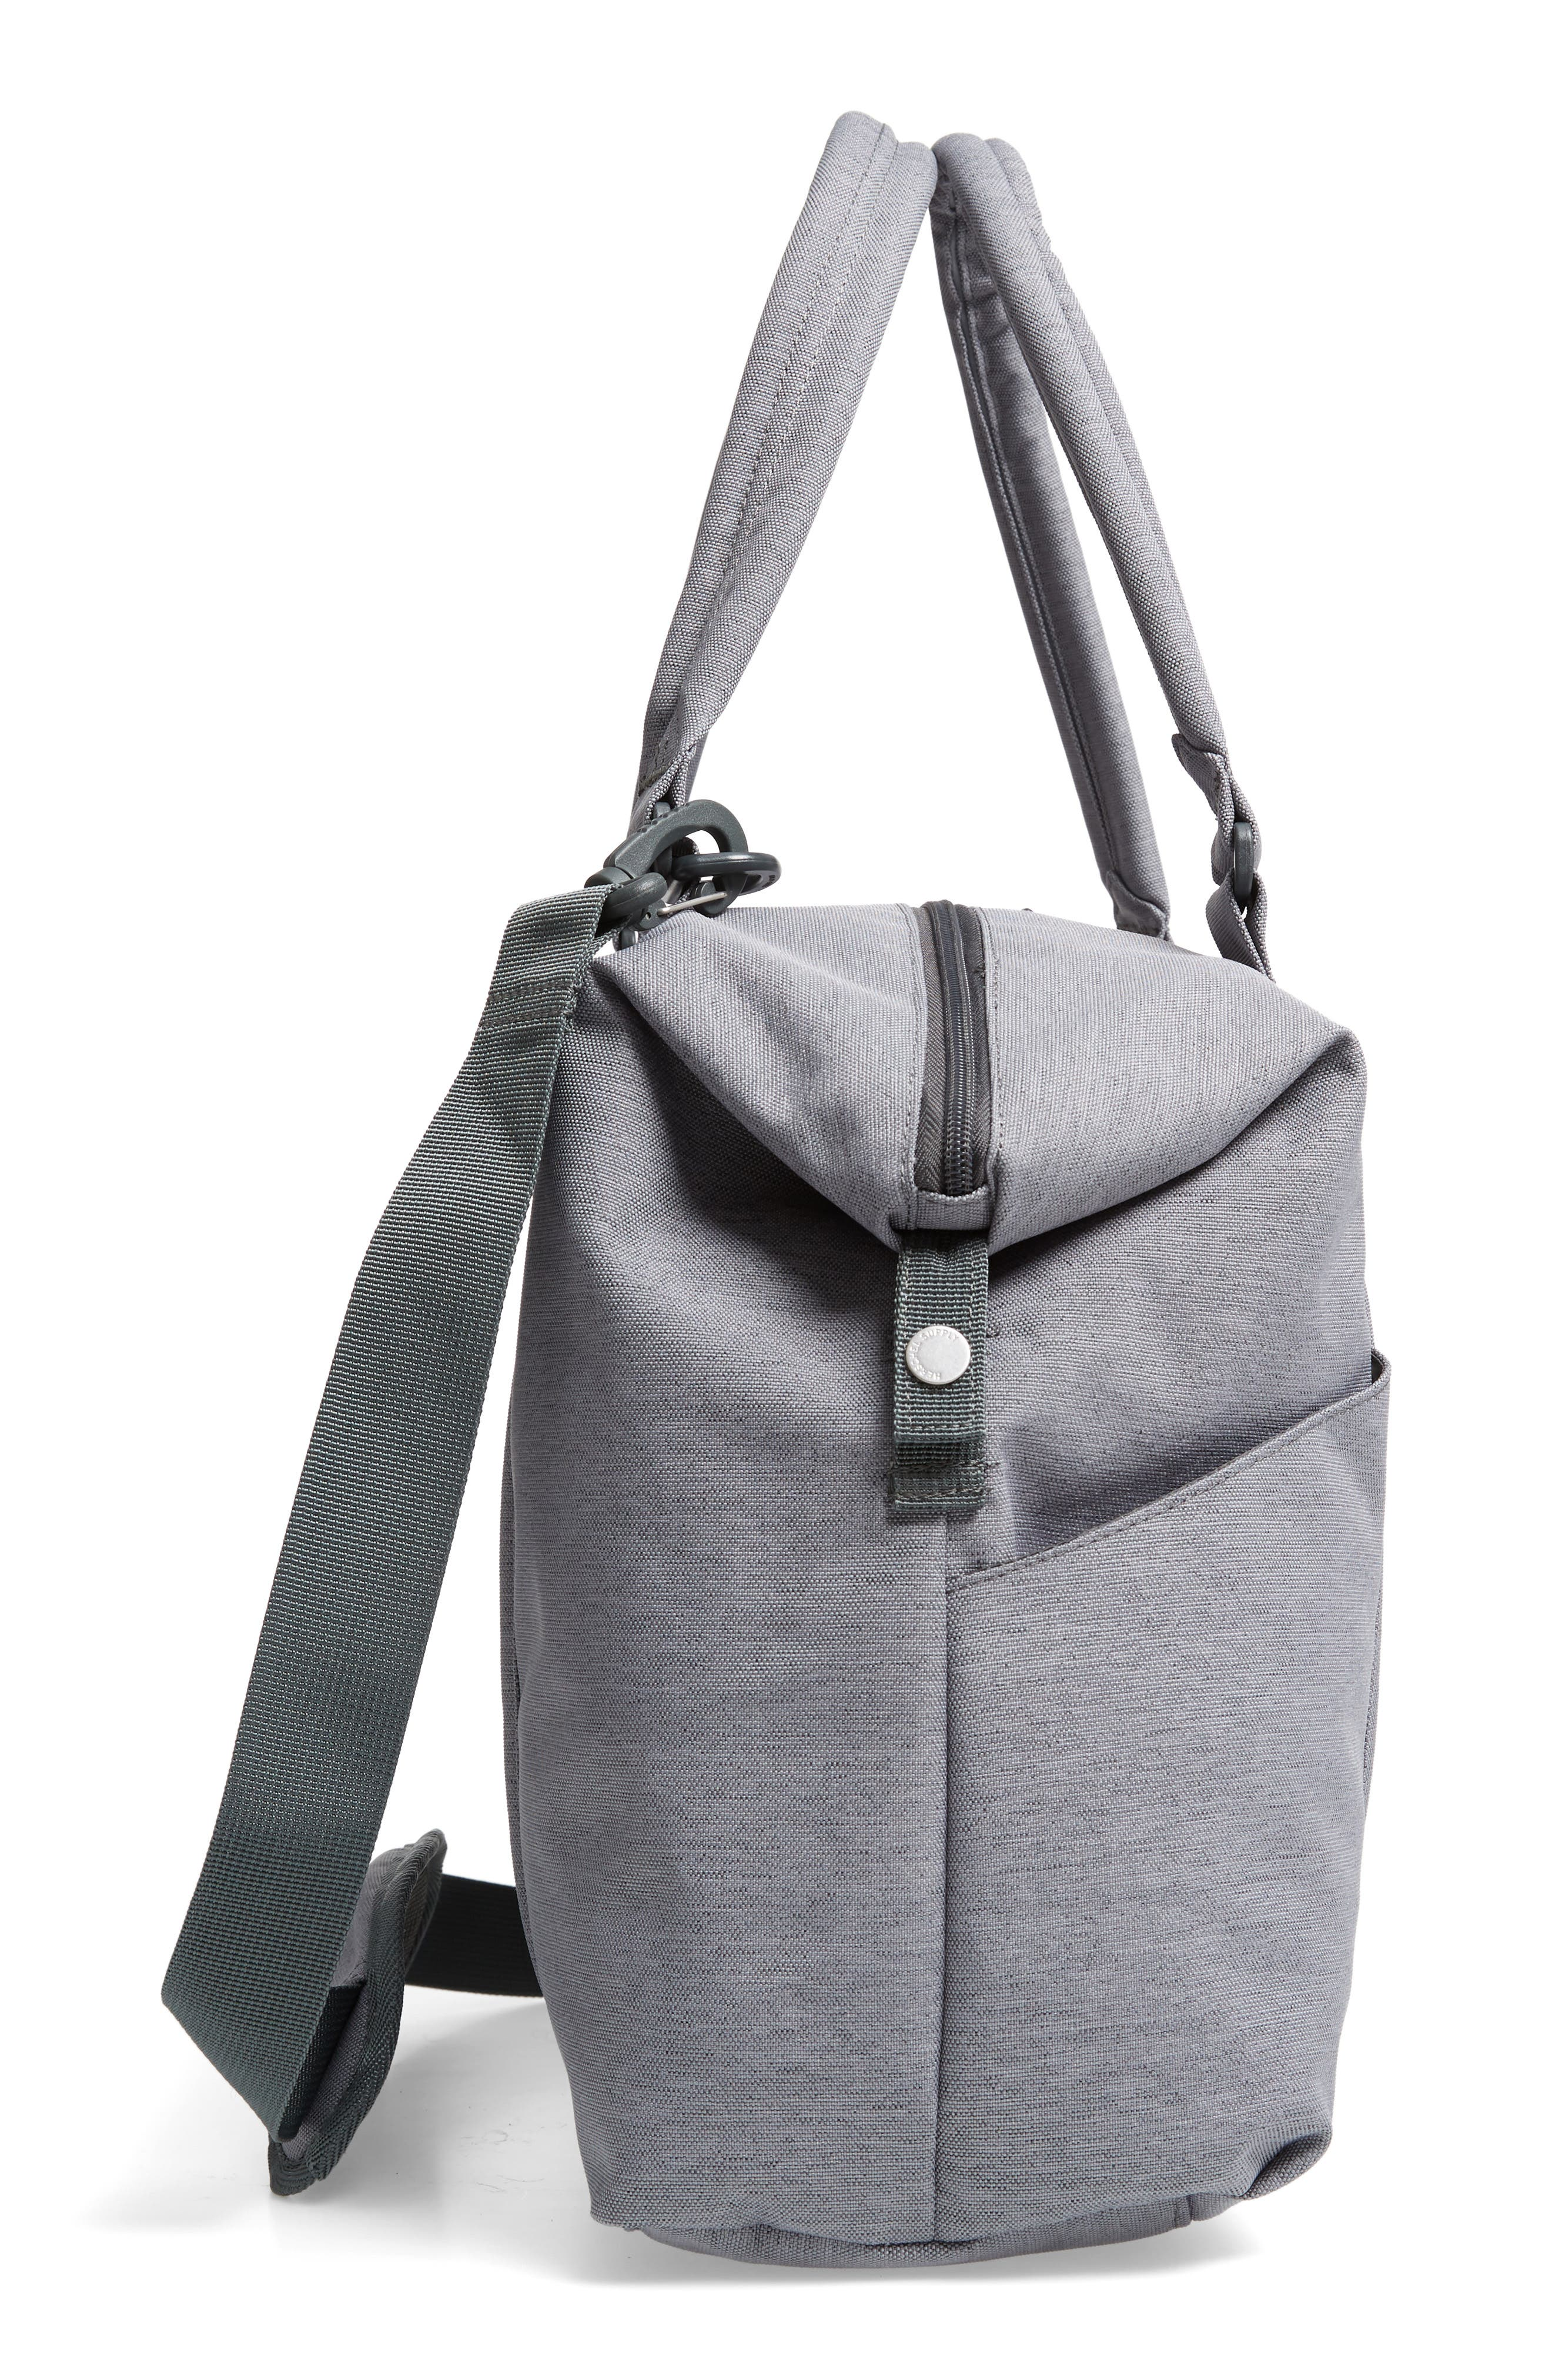 Strand Sprout Diaper Bag,                             Alternate thumbnail 5, color,                             Mid Grey Crosshatch